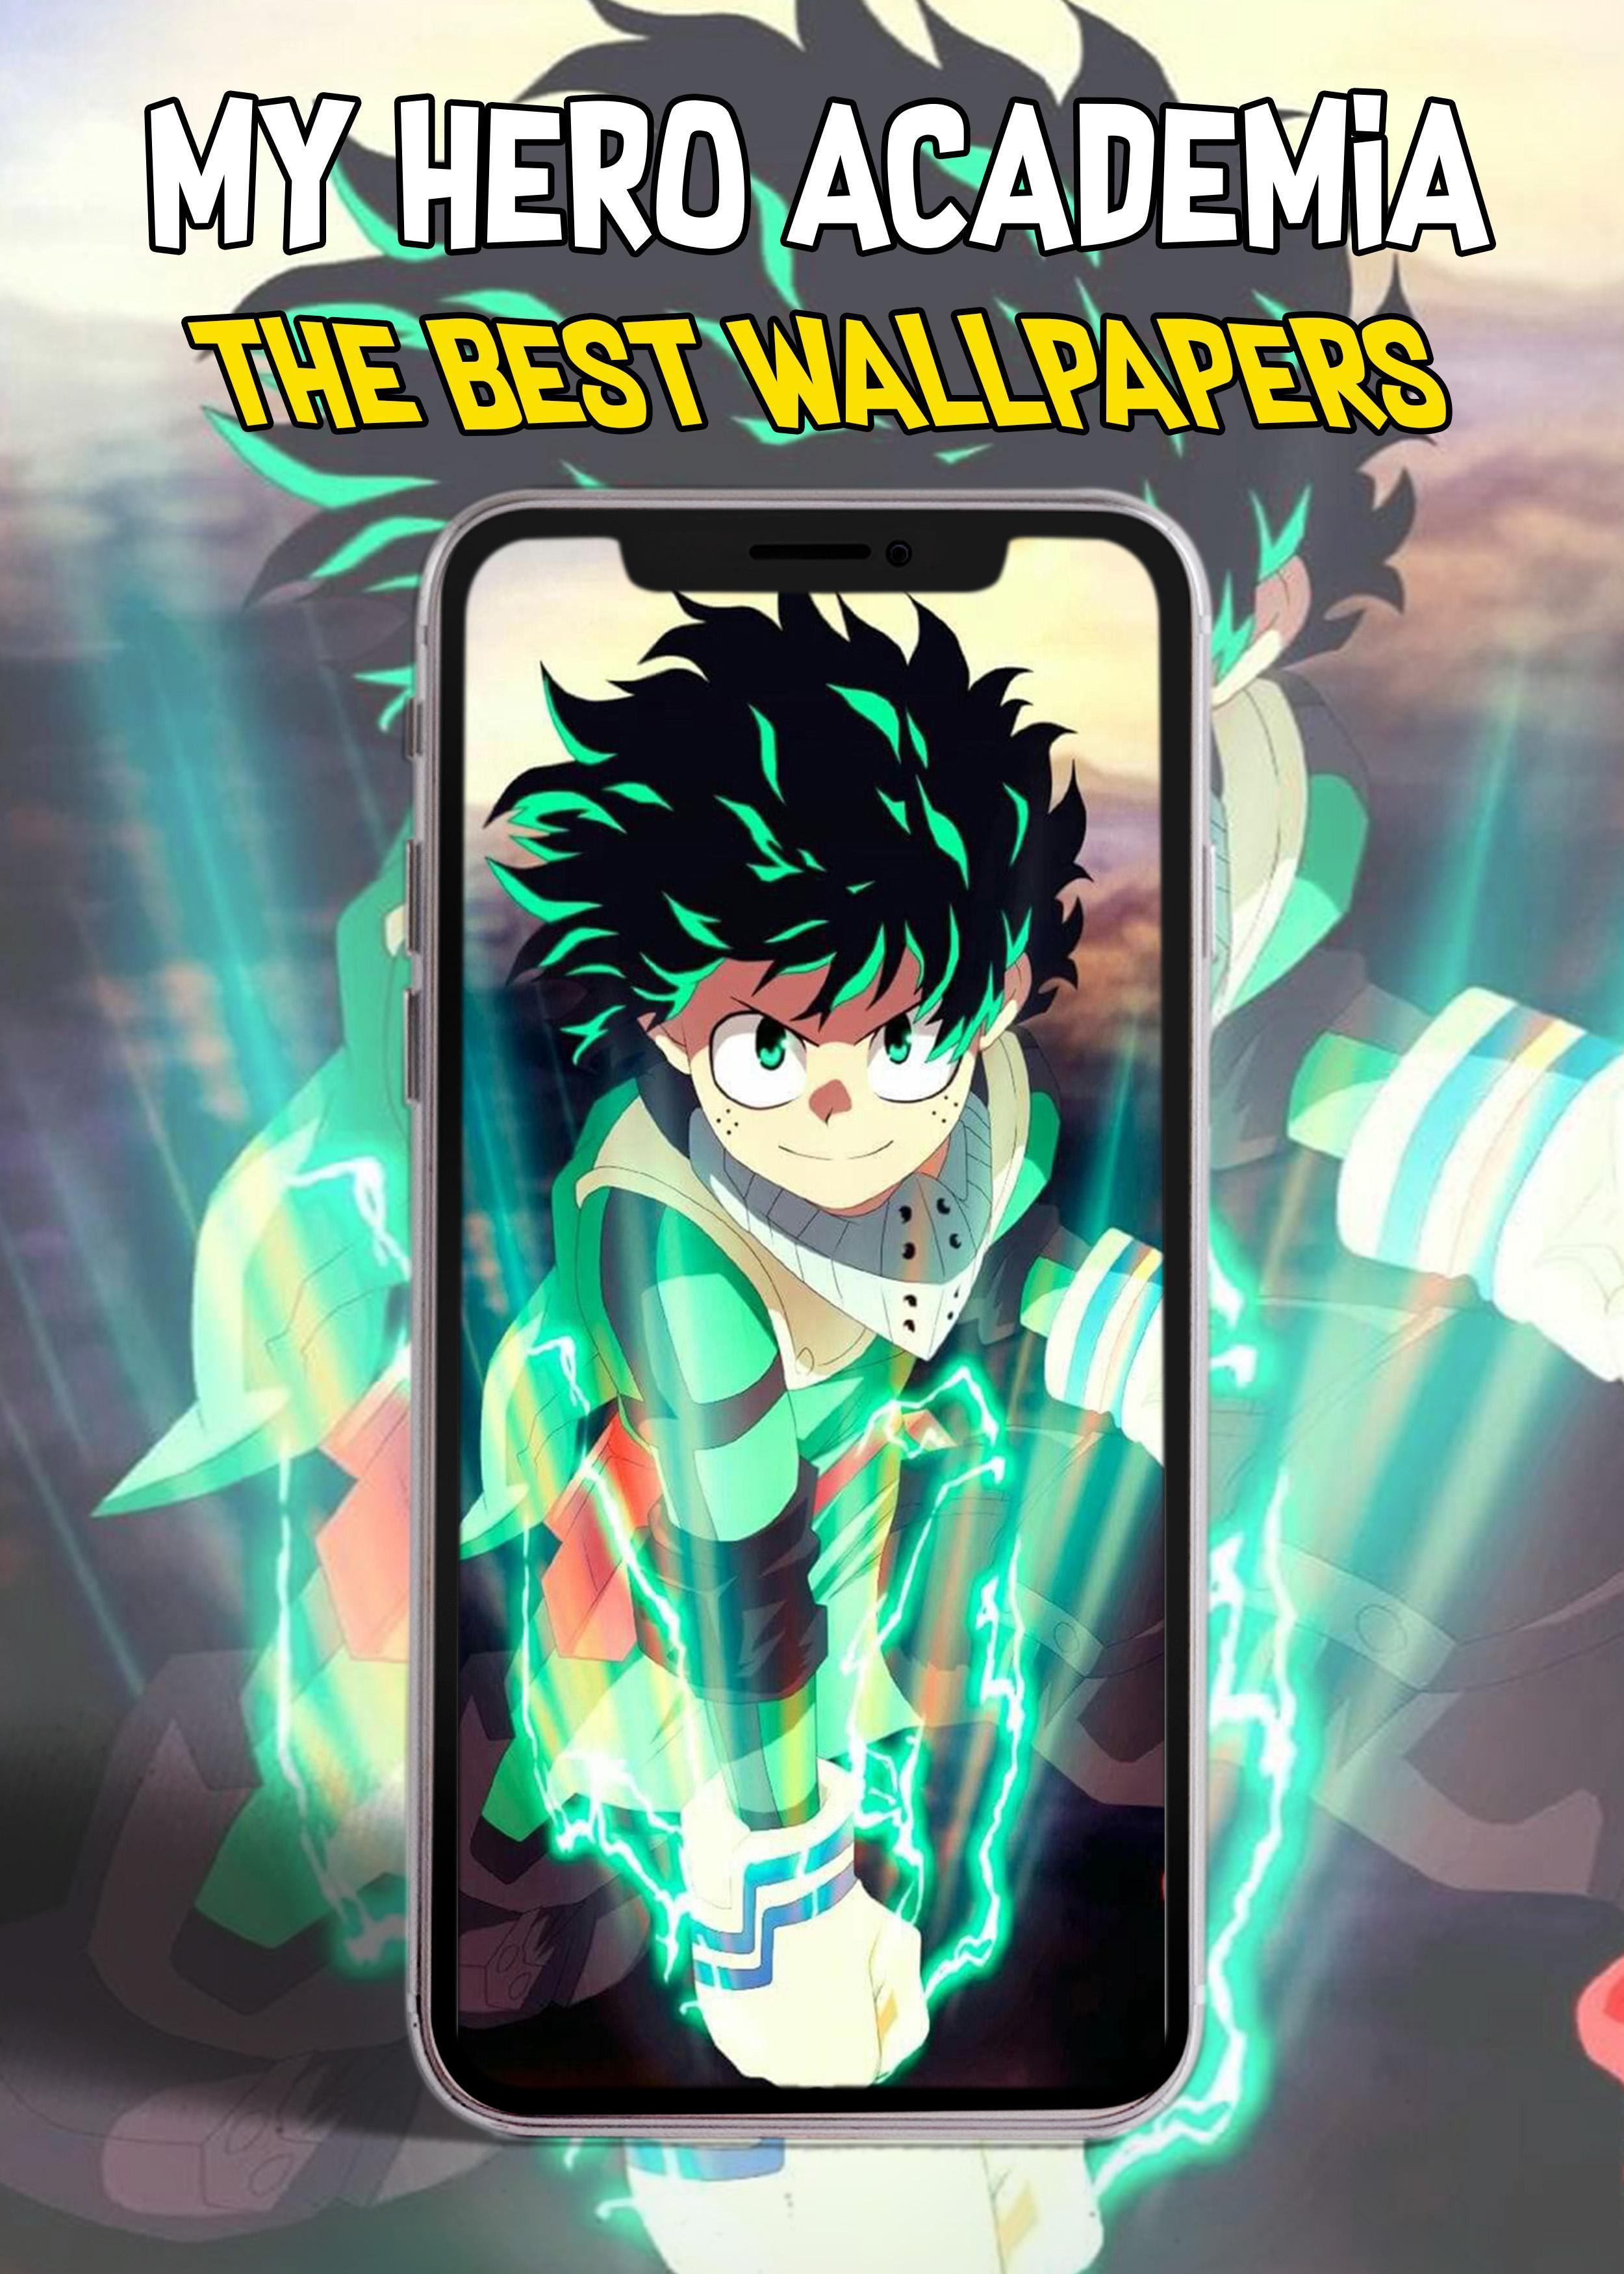 Mha Wallpapers Hd For Android Apk Download